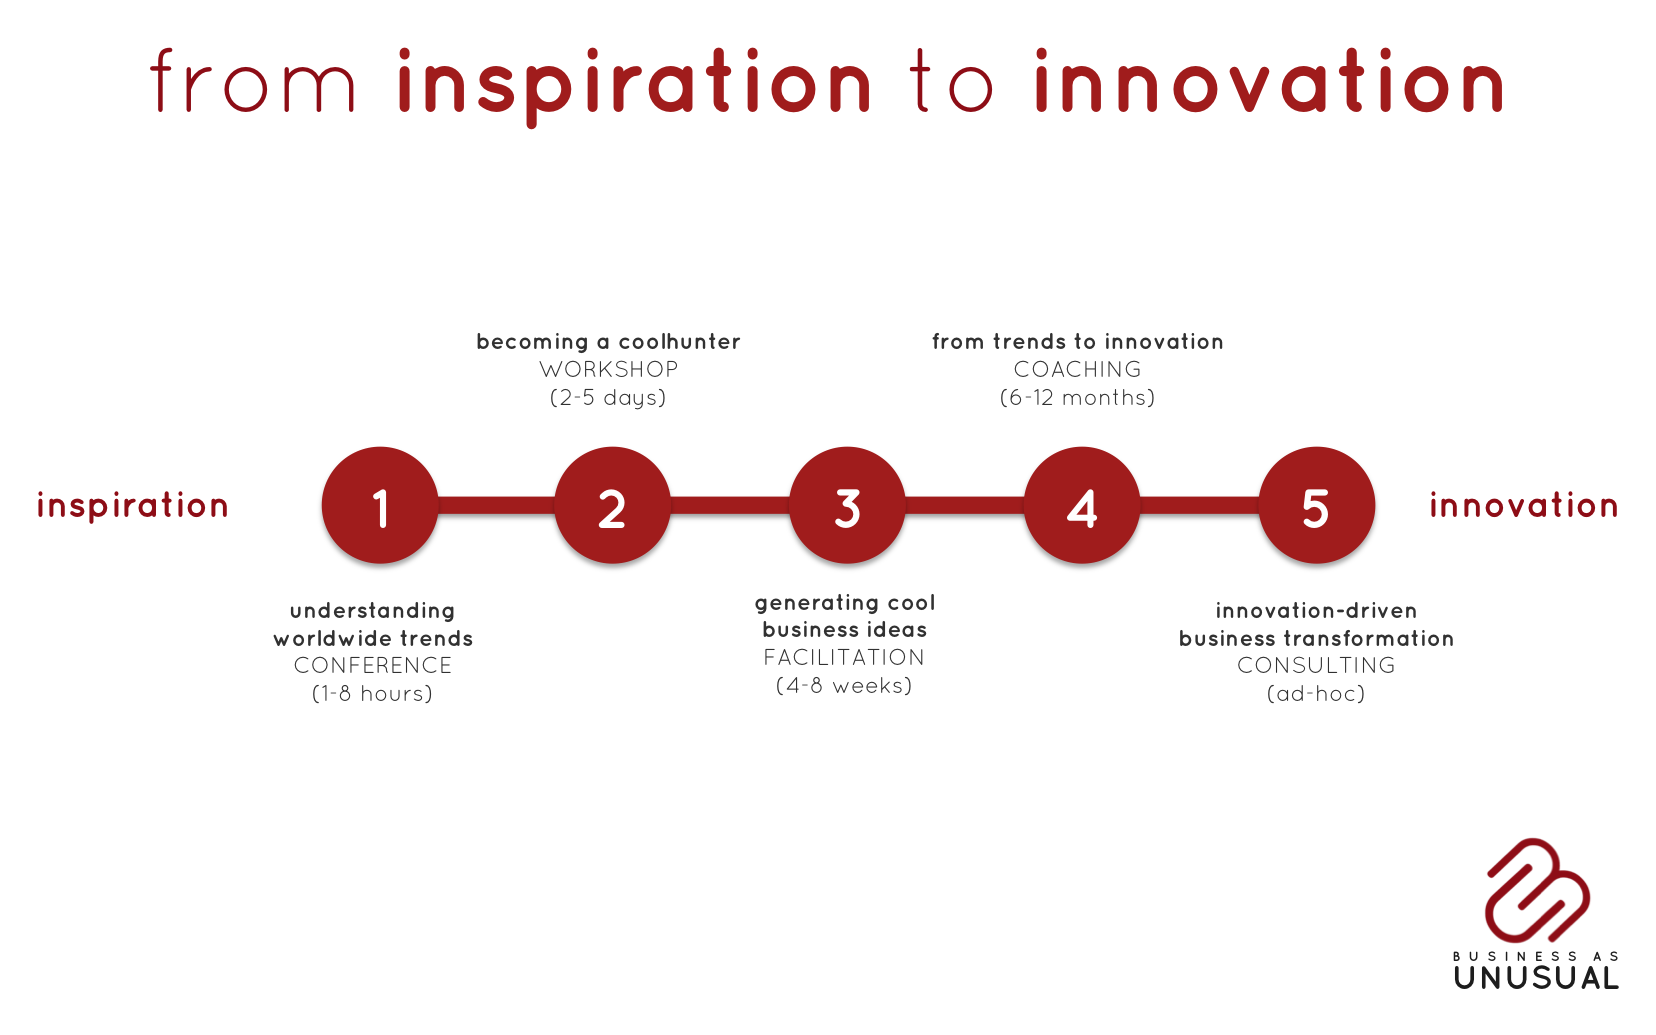 from inspiration to innovation